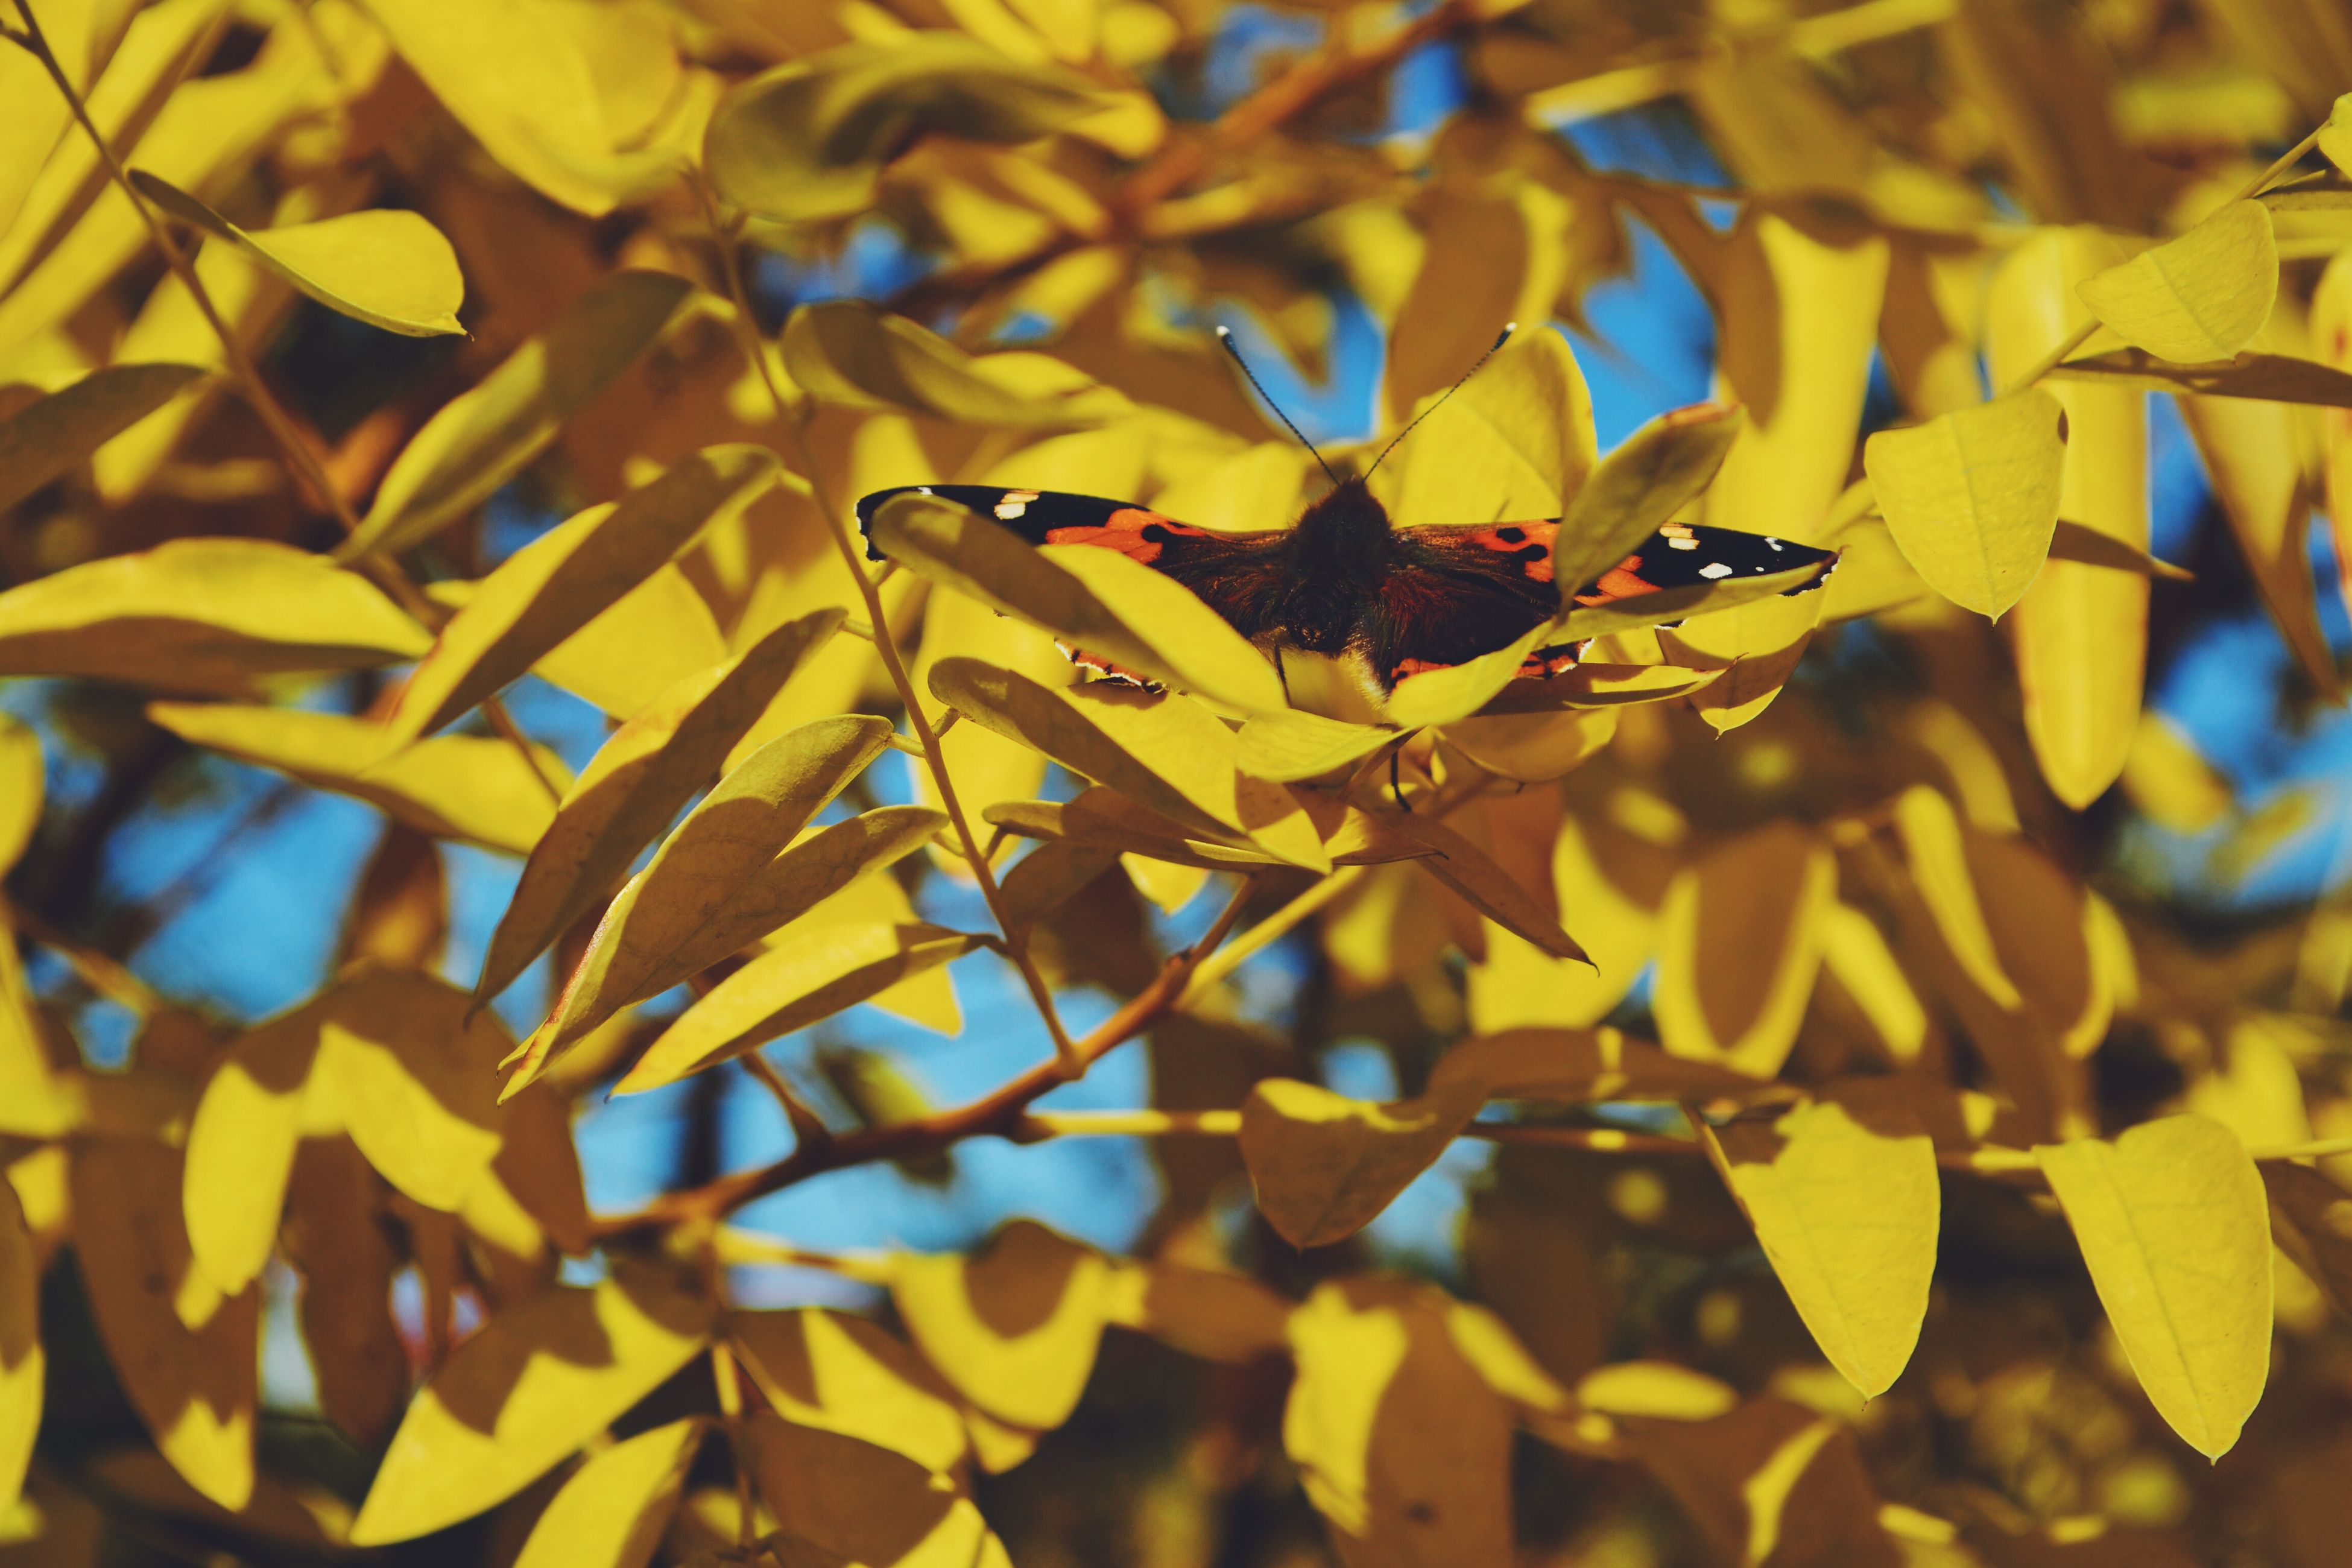 leaf, autumn, yellow, change, season, tree, growth, branch, focus on foreground, nature, leaves, close-up, beauty in nature, selective focus, day, outdoors, no people, low angle view, abundance, sunlight